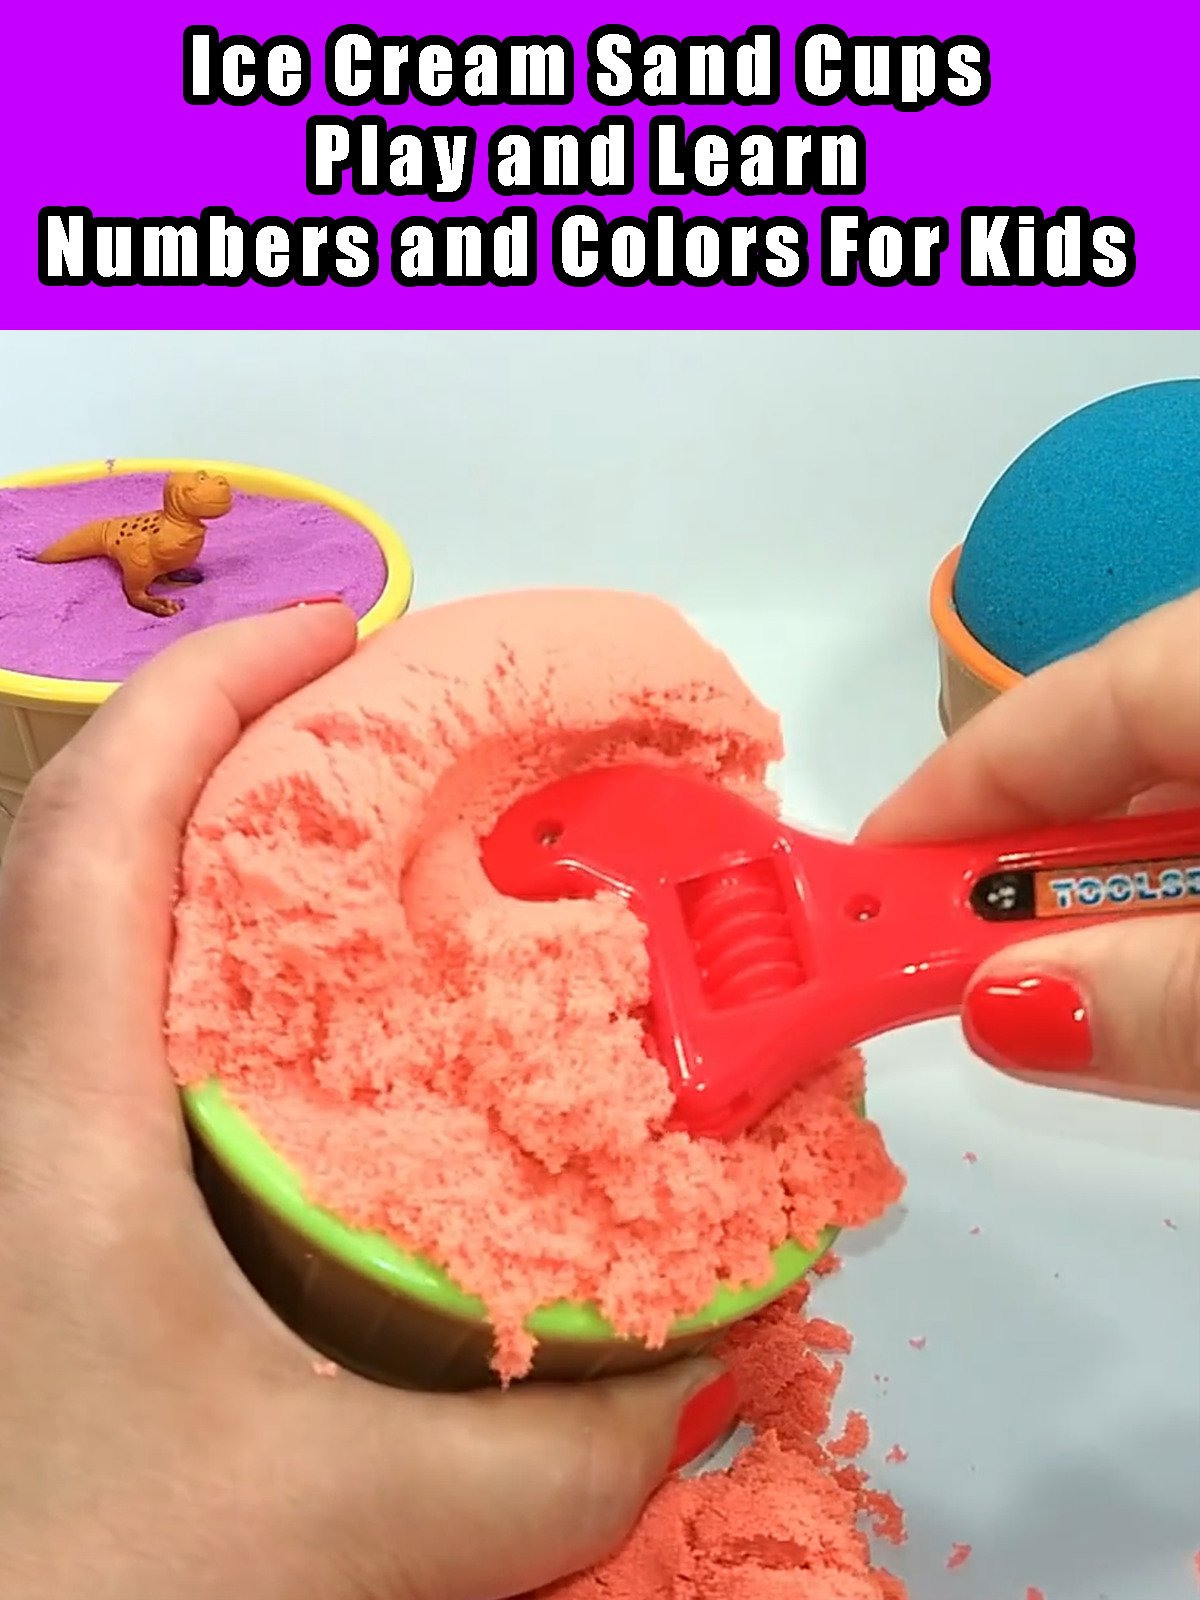 Ice Cream Sand Cups Play and Learn Numbers and Colors For Kids